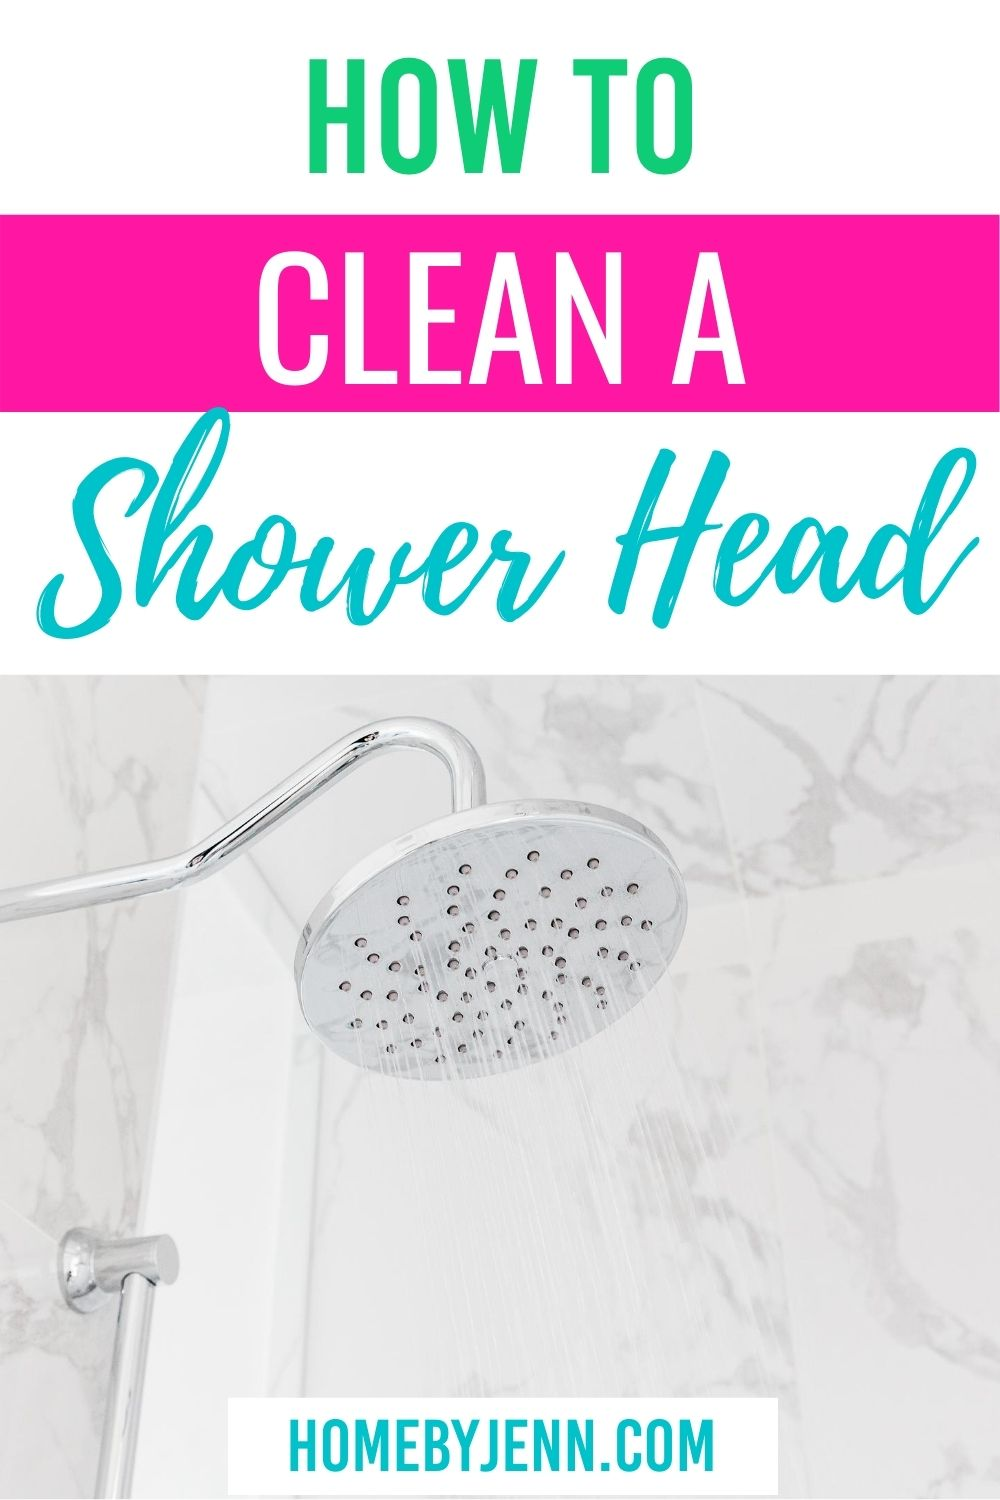 Learn how to clean your shower head by following these simple cleaning tips. #showerhead #howto #cleaning #cleaningtips #cleaninghacks #cleaningtipsandtricks via @homebyjenn